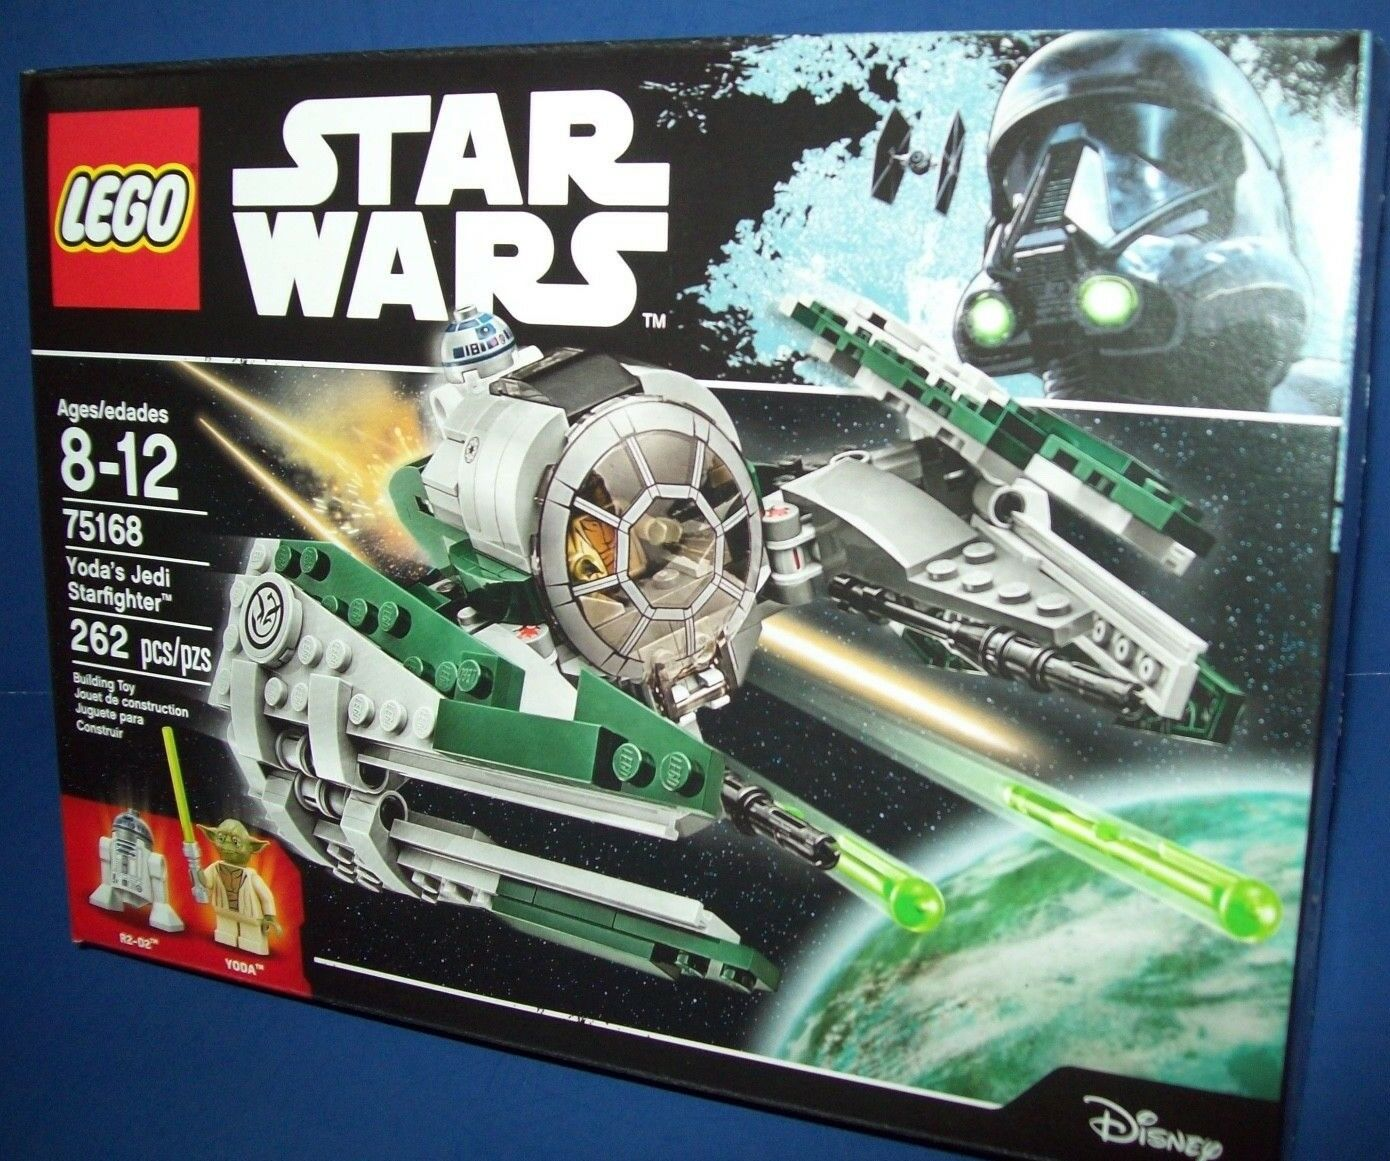 LEGO 75168 Star Wars Yoda's Jedi Starfighter NEW NISB